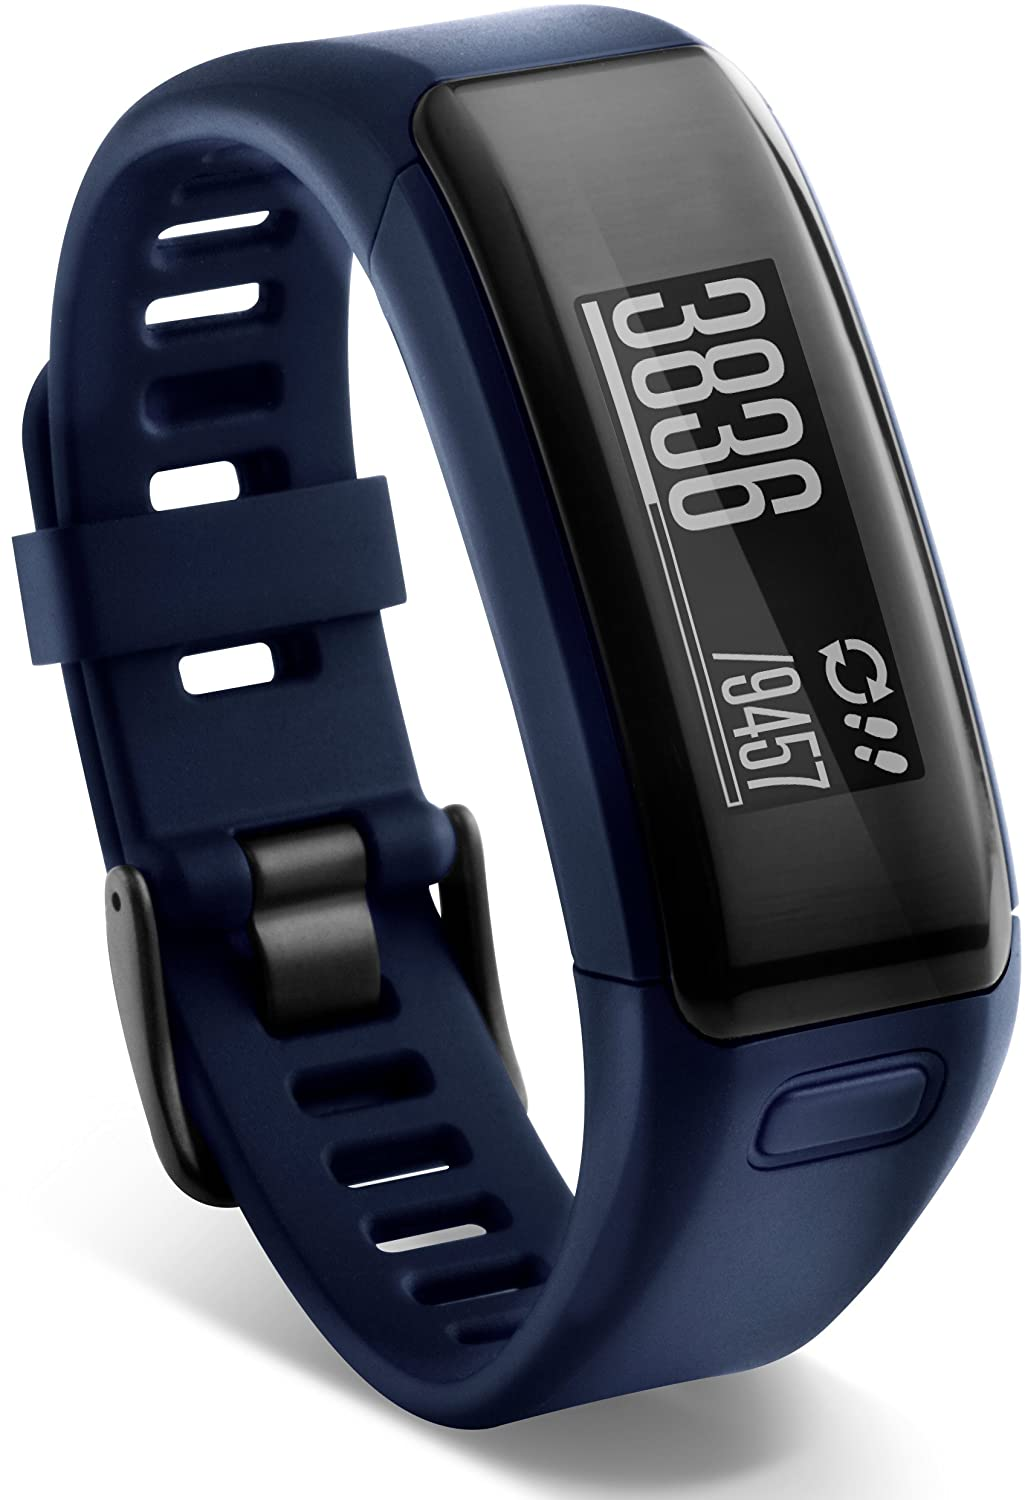 Garmin Vivosmart HR Activity Tracker Regular Fit - Midnight Blue